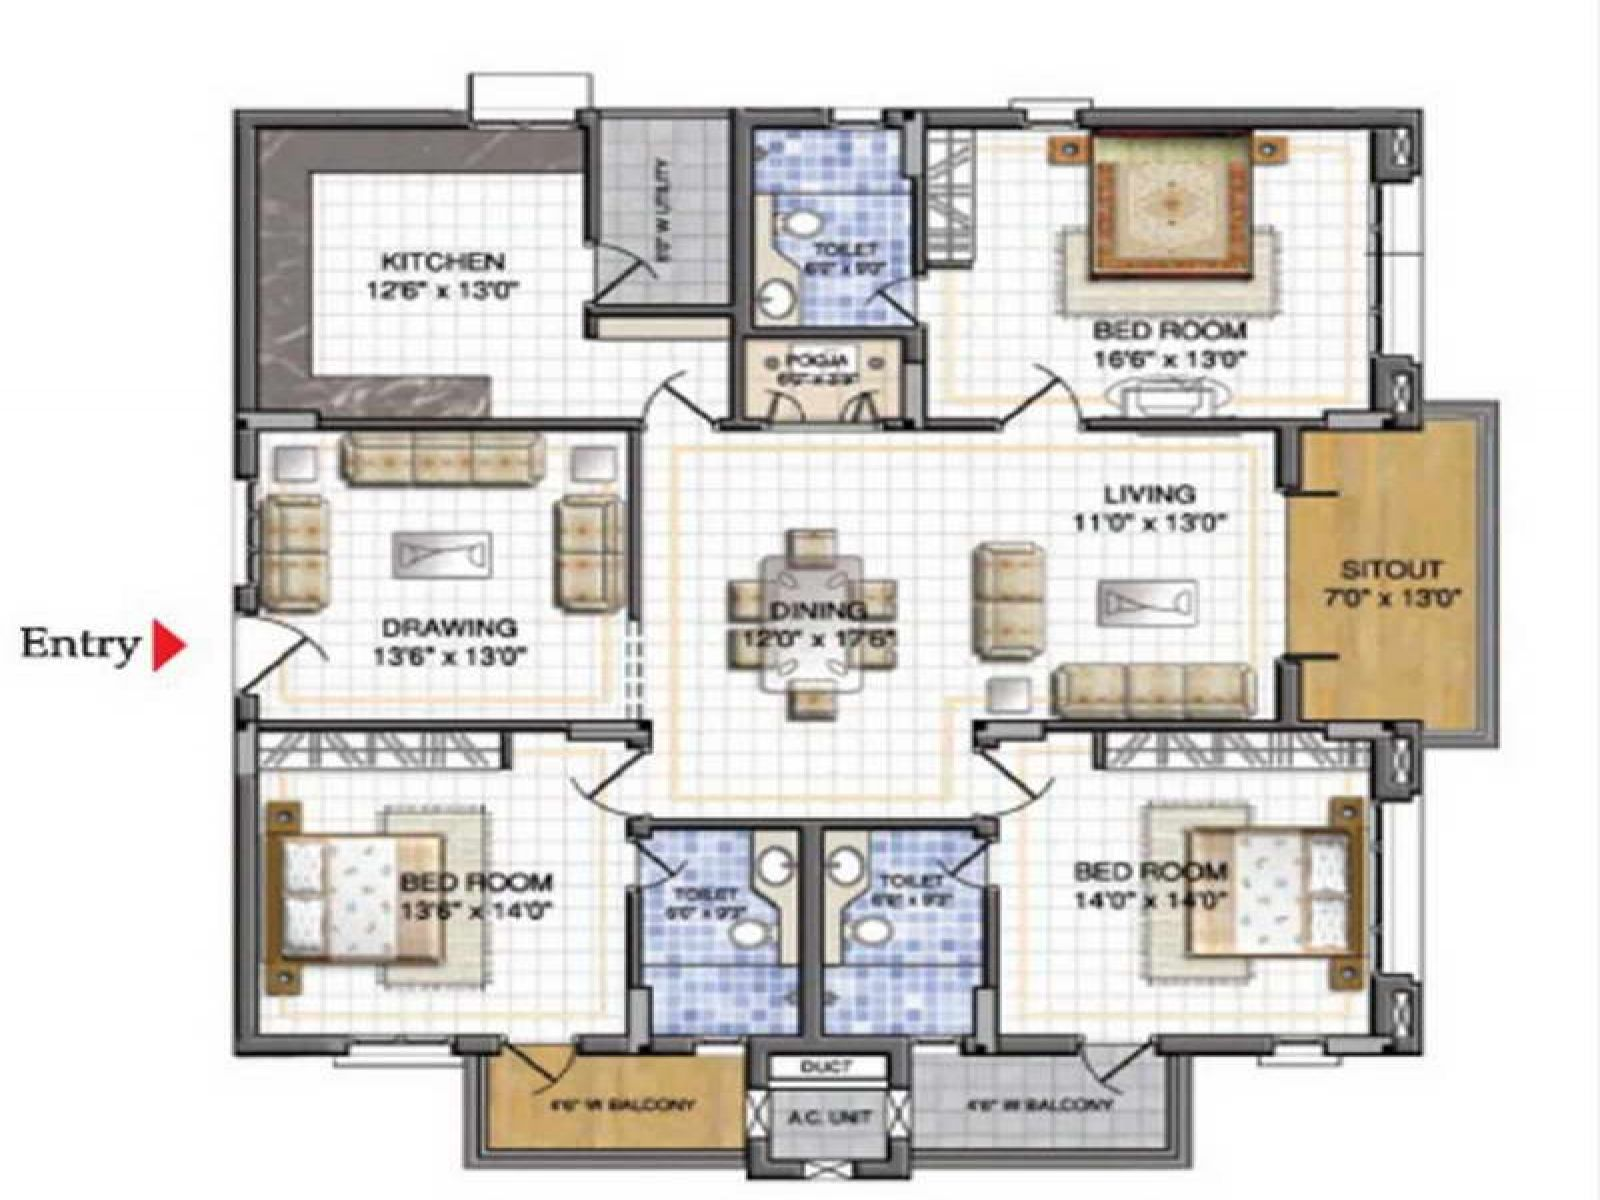 Sweet home 3d plans google search house designs pinterest layout online house plans Free house layouts floor plans